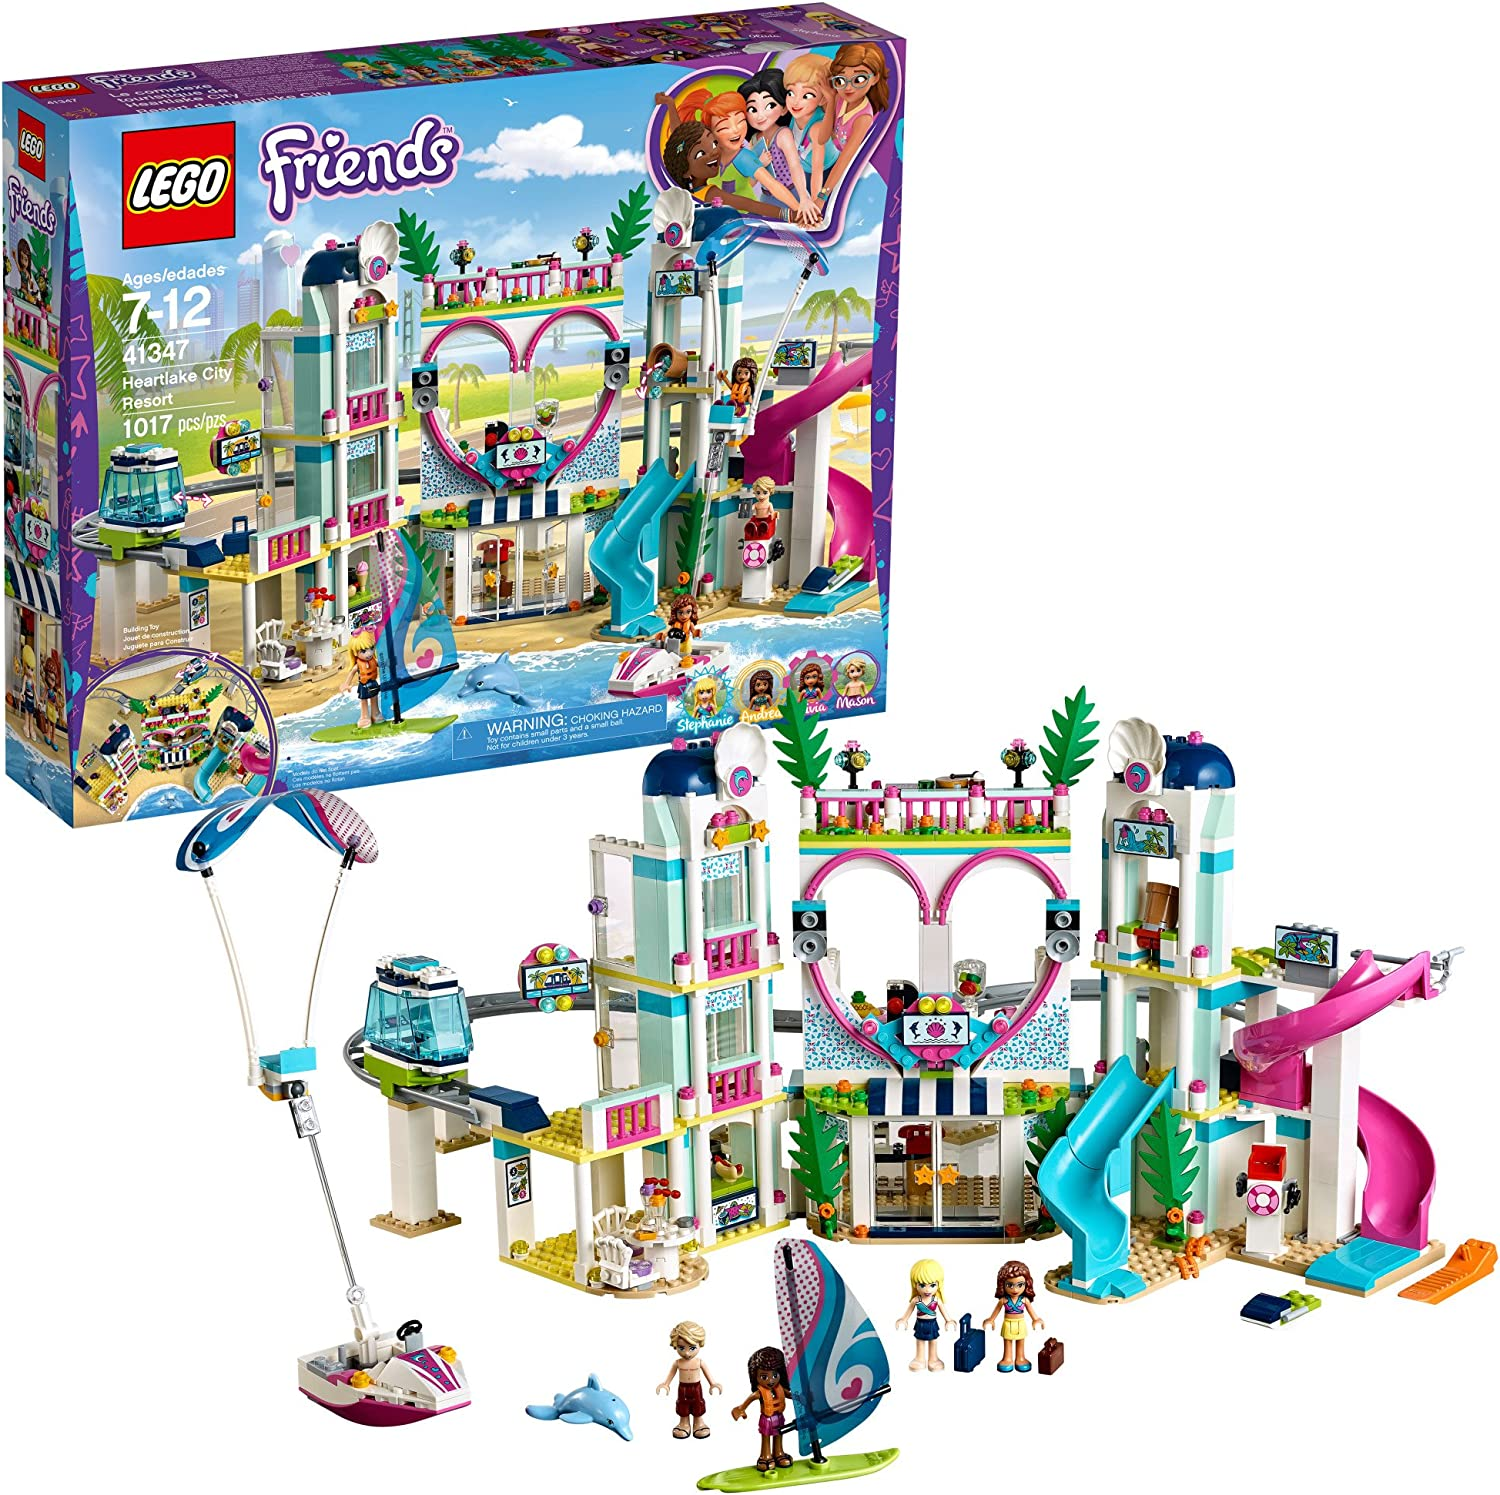 Amazon Com Lego Friends Heartlake City Resort 41347 Top Hotel Building Blocks Kit For Kids Aged 7 12 Popular And Fun Toy Set For Girls 1017 Pieces Discontinued By Manufacturer Toys Games